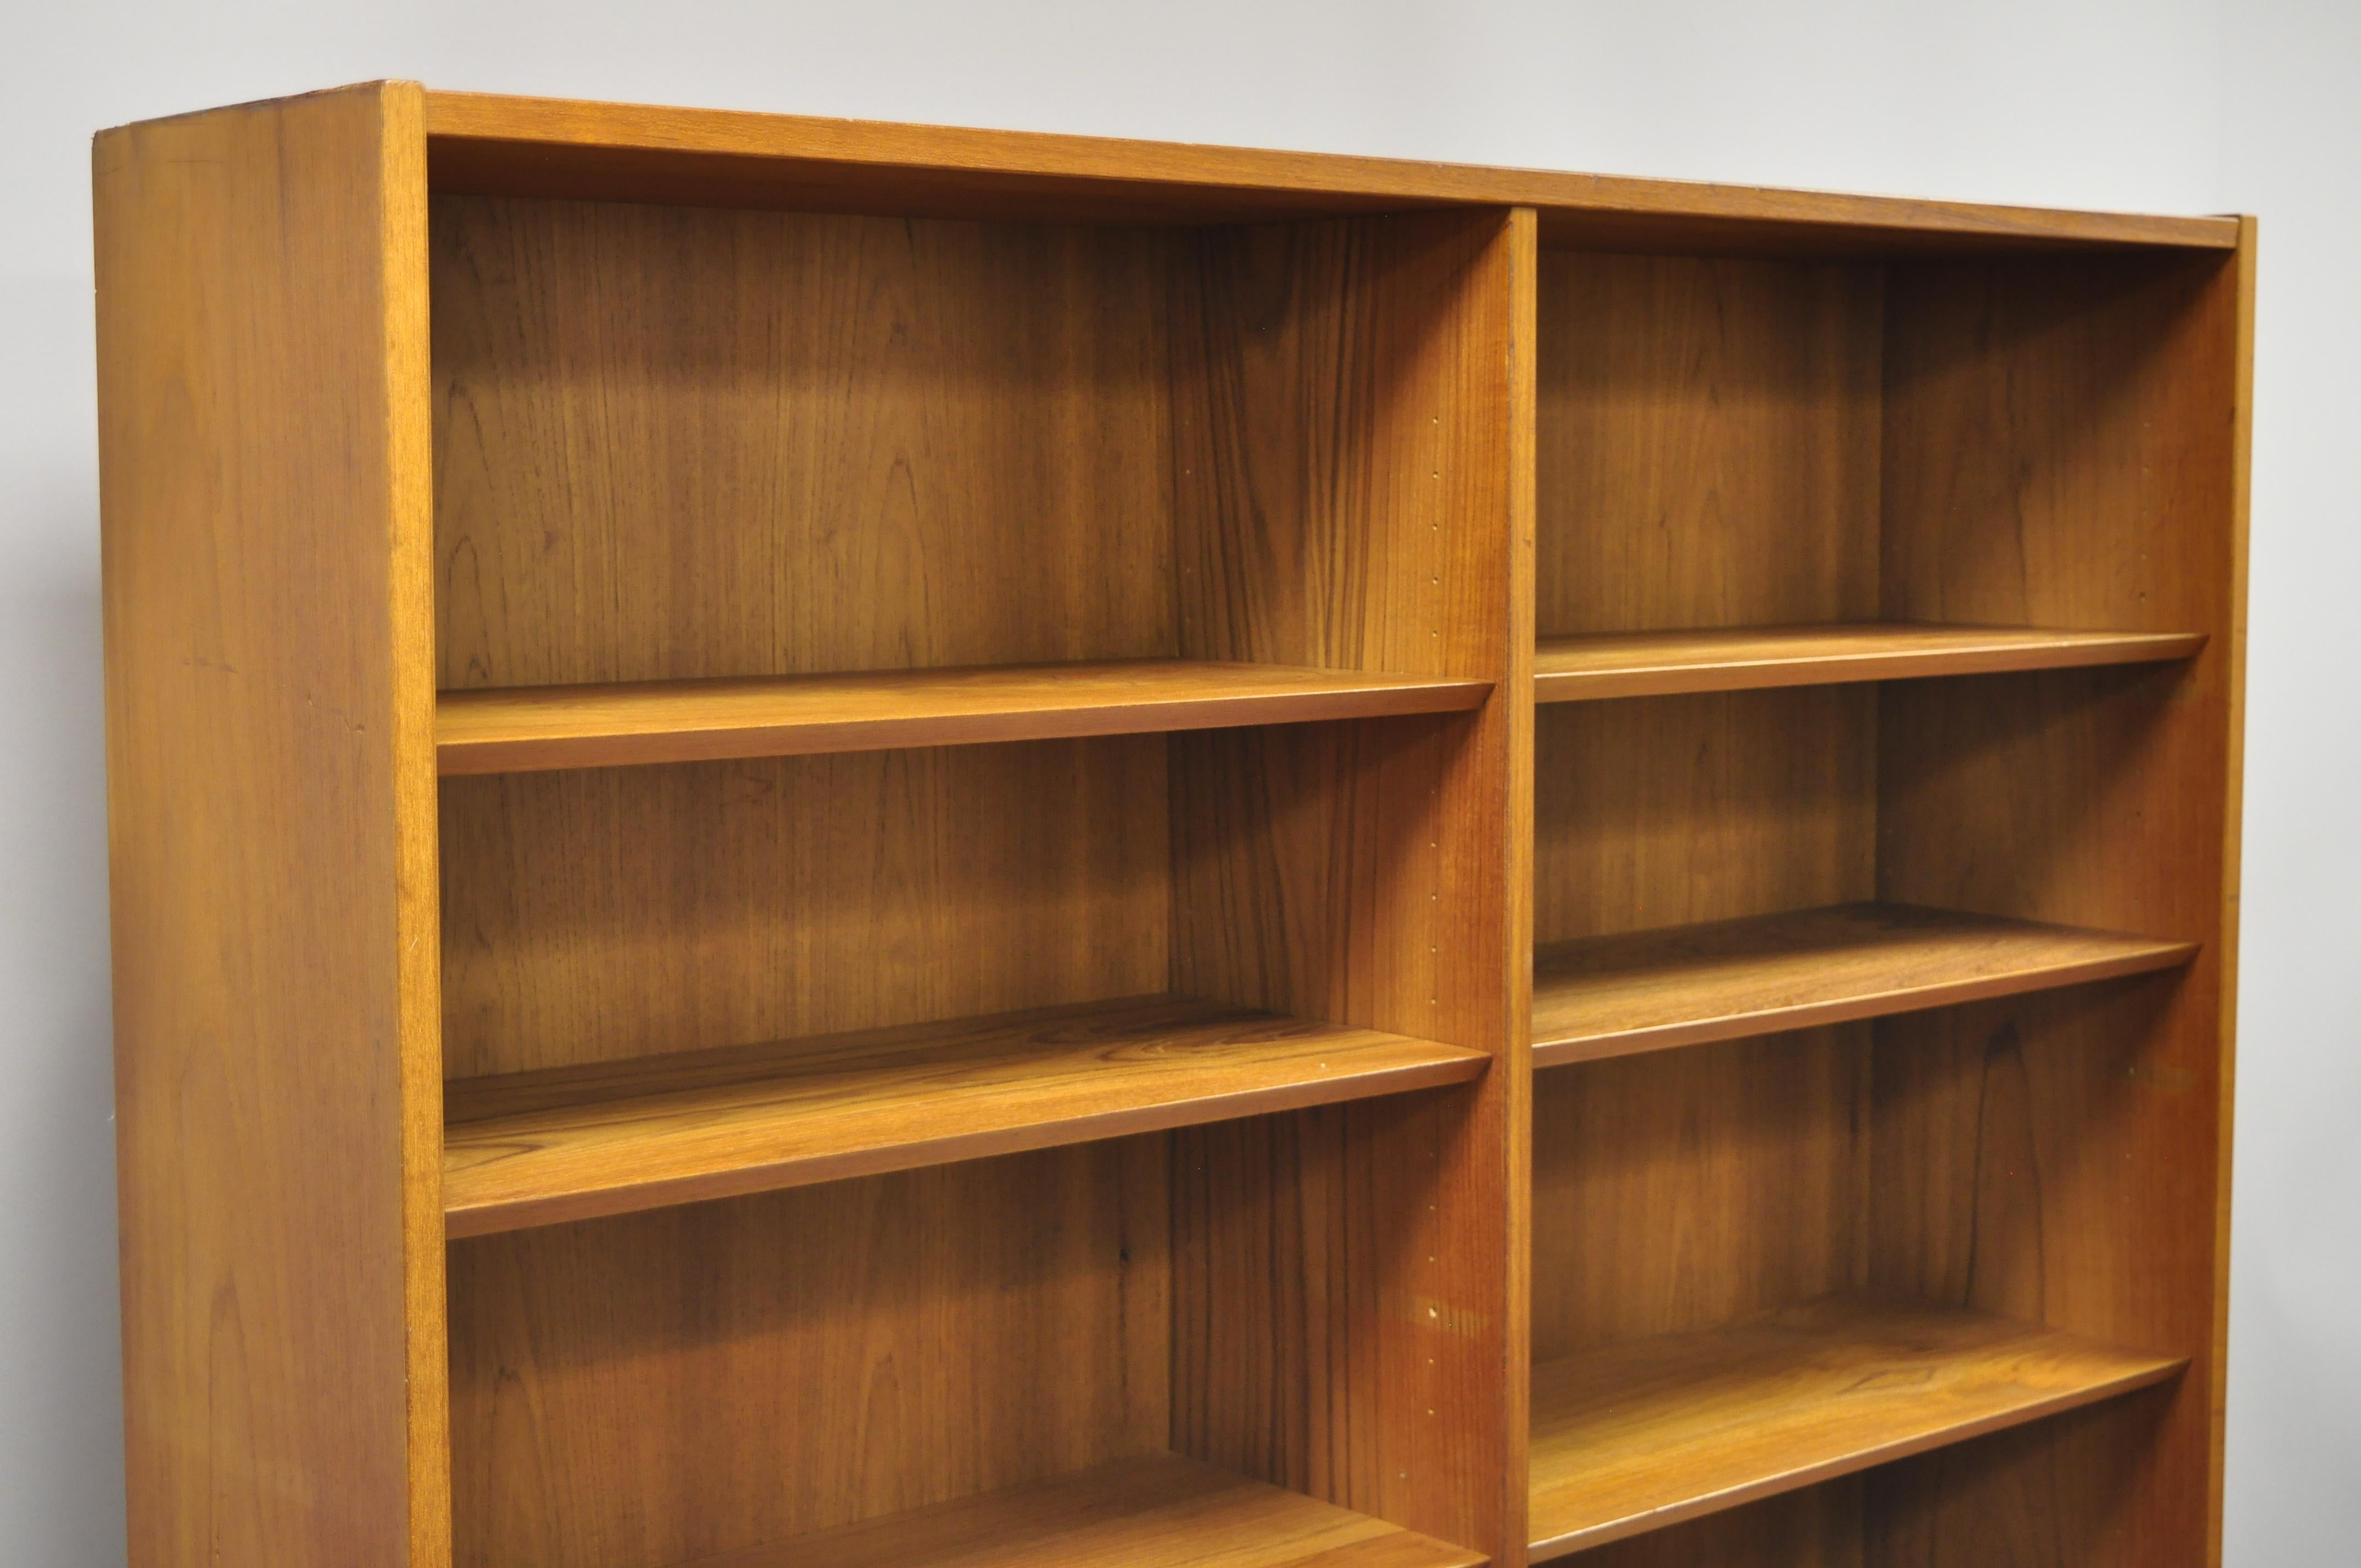 Midcentury Danish Modern Teak Wood Bookcase Wall Unit